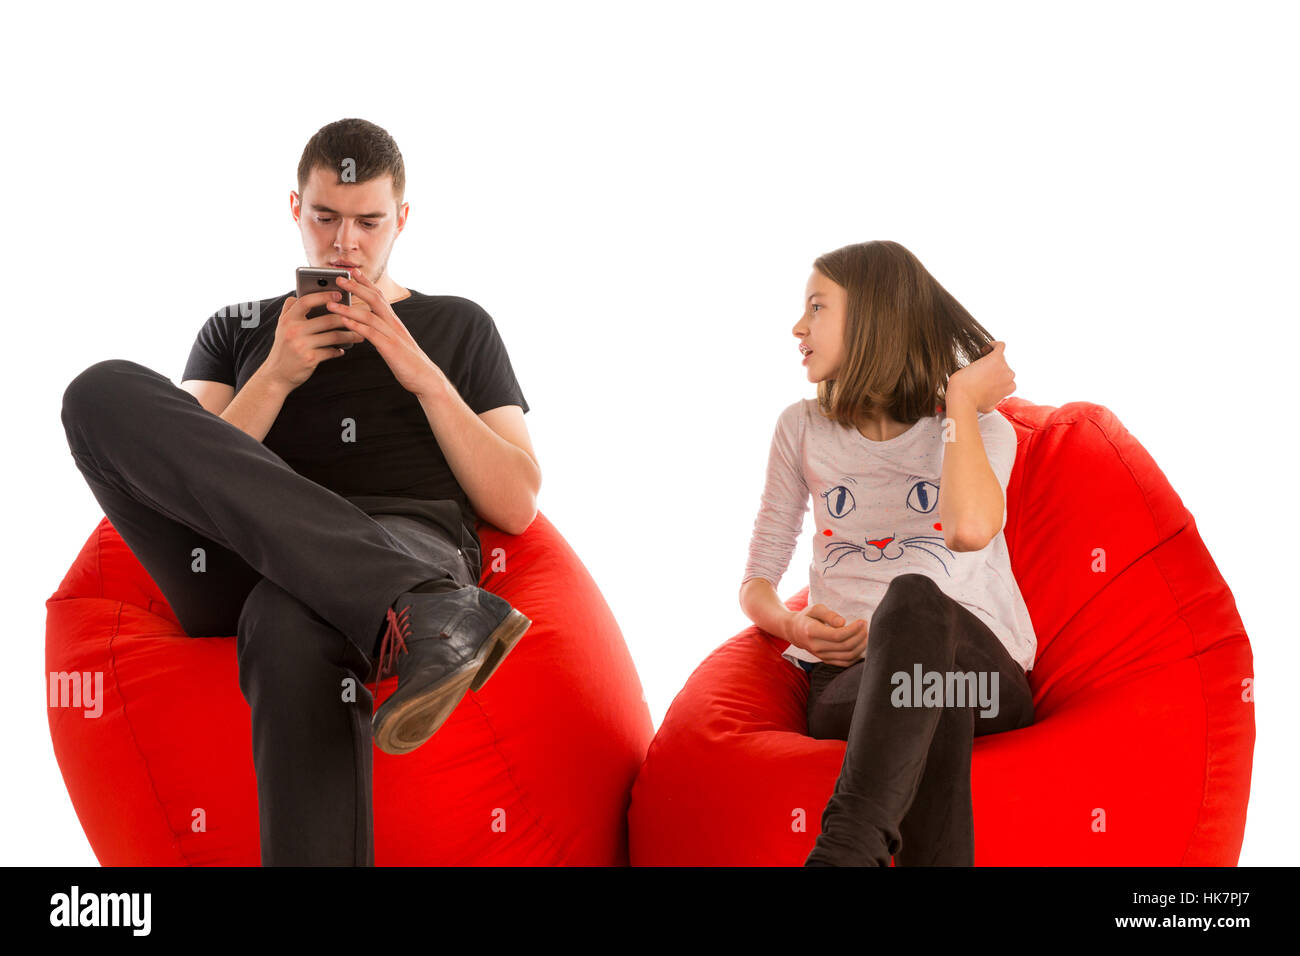 Young man and girl sitting on red beanbag chairs isolated on white background - Stock Image